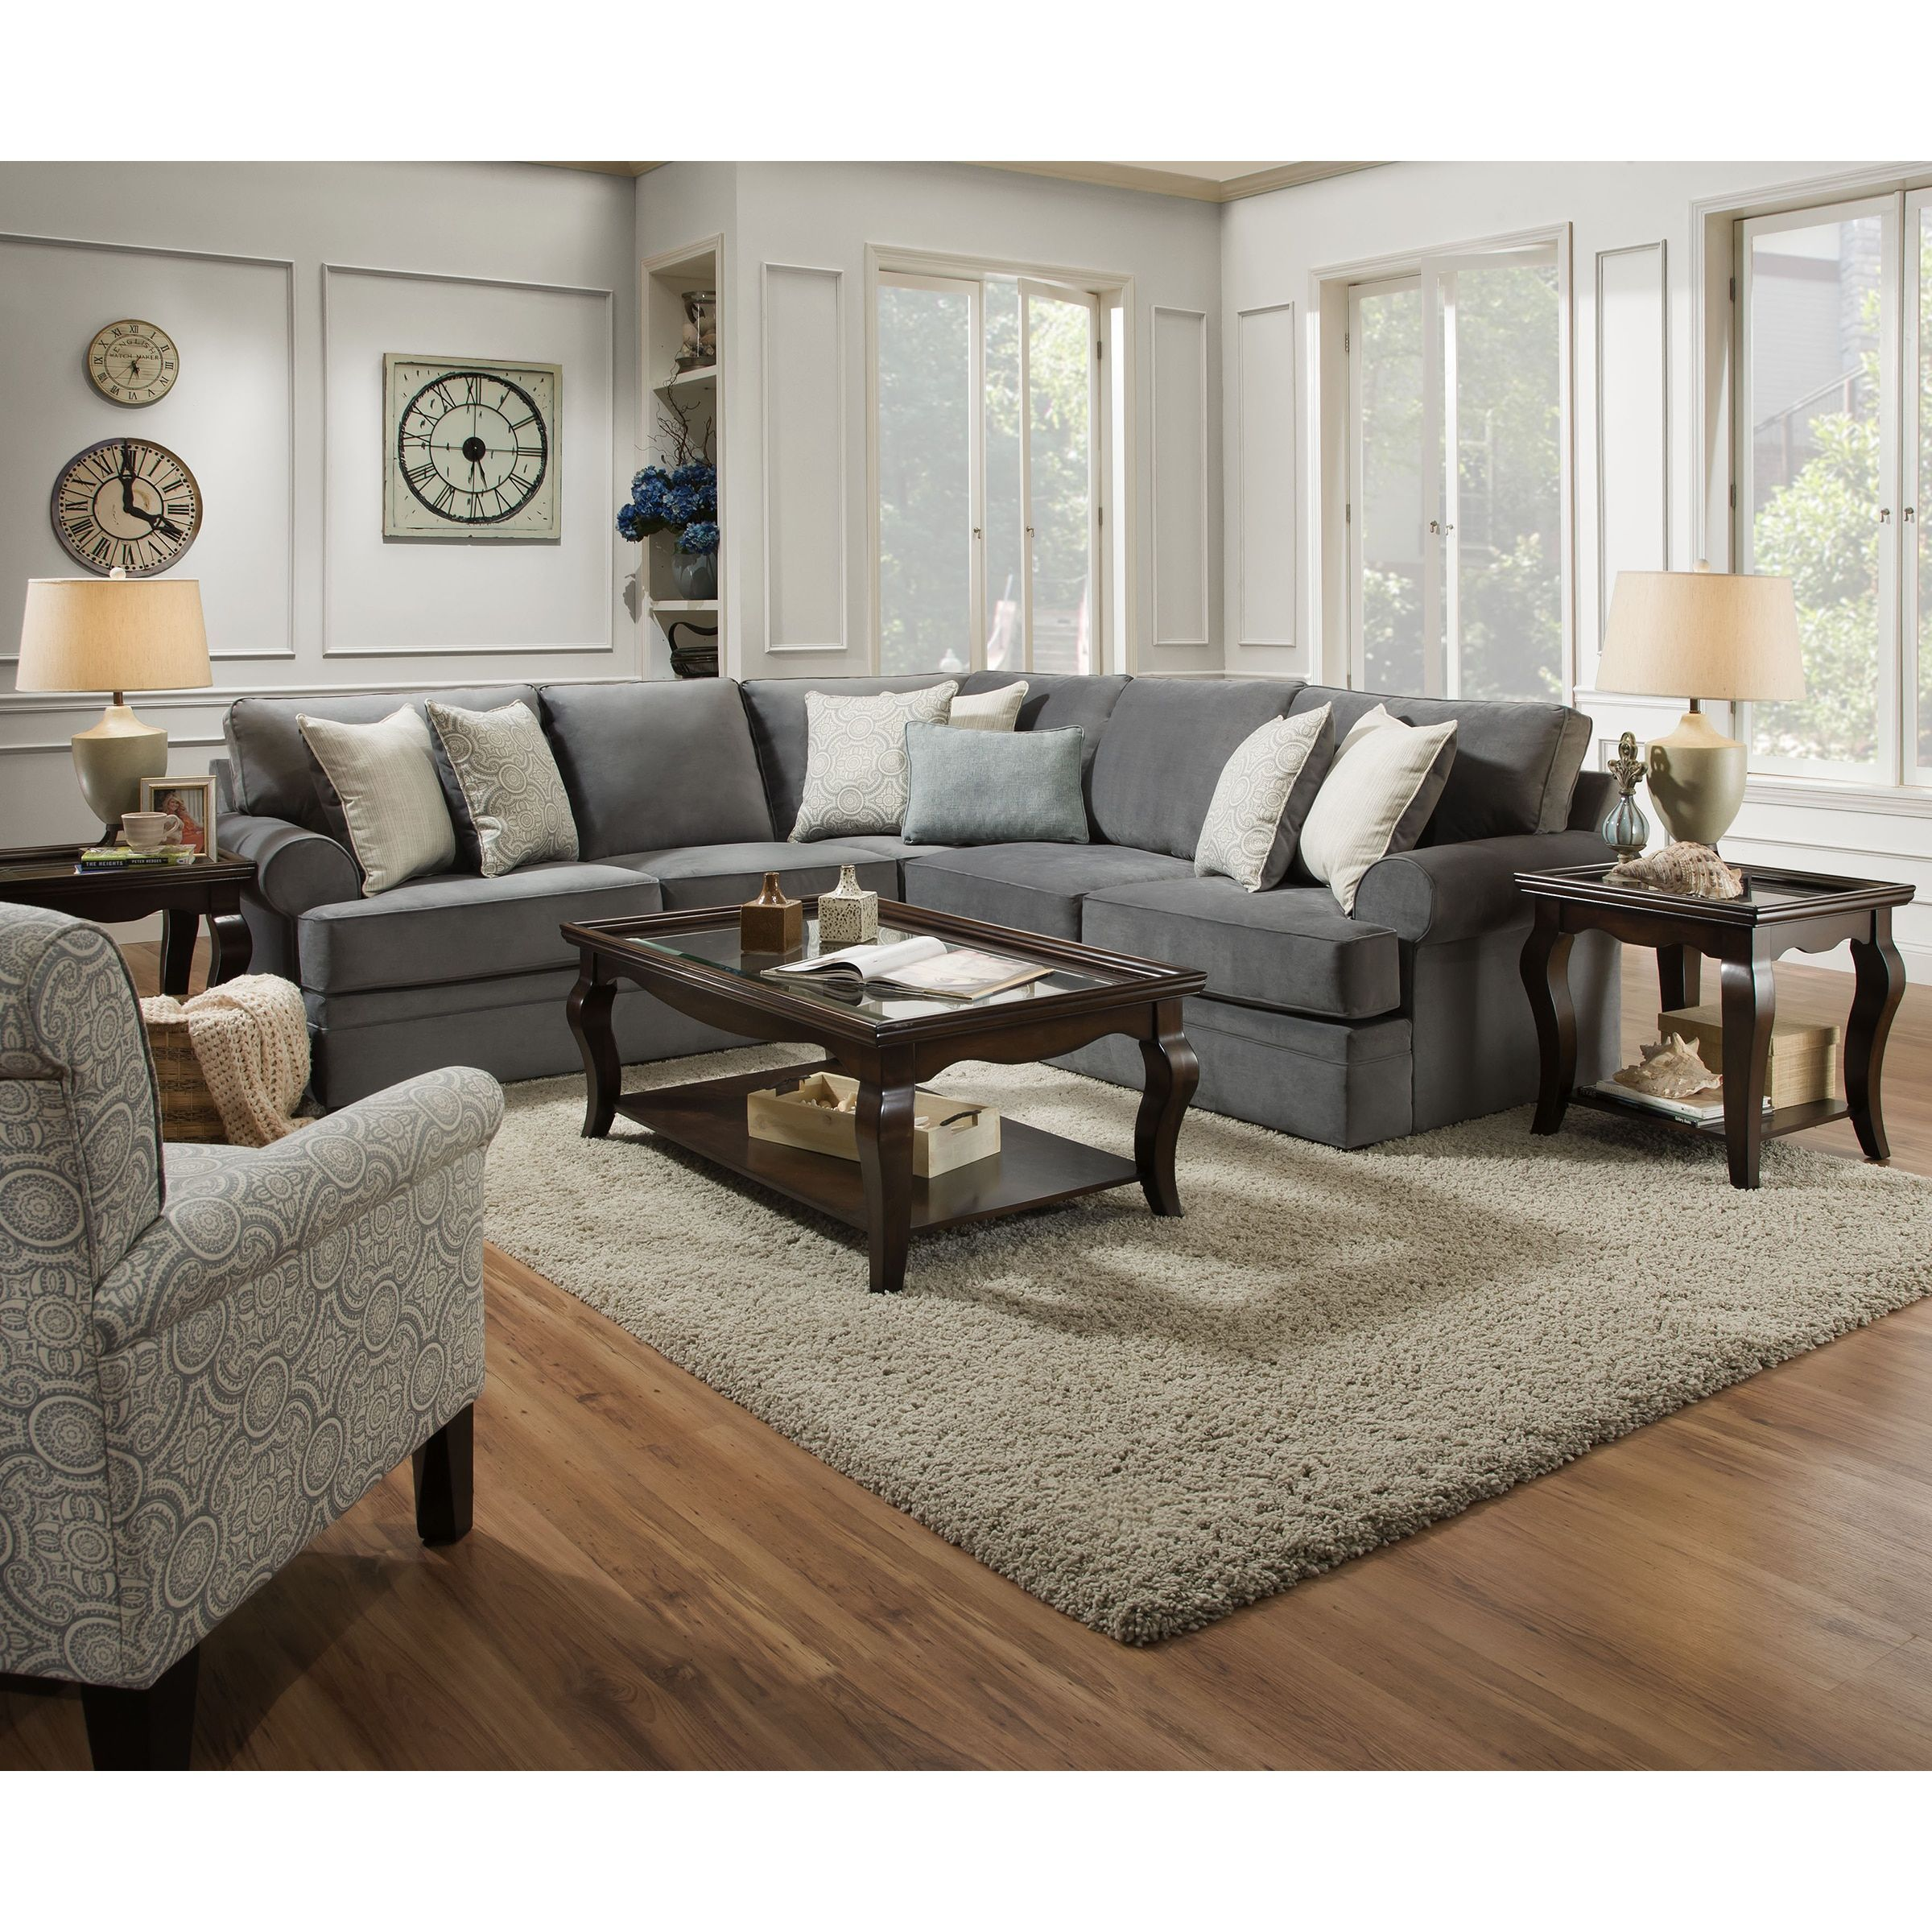 Simmons upholstery abington seven seas sectional in 2019 - Simmons living room furniture sets ...